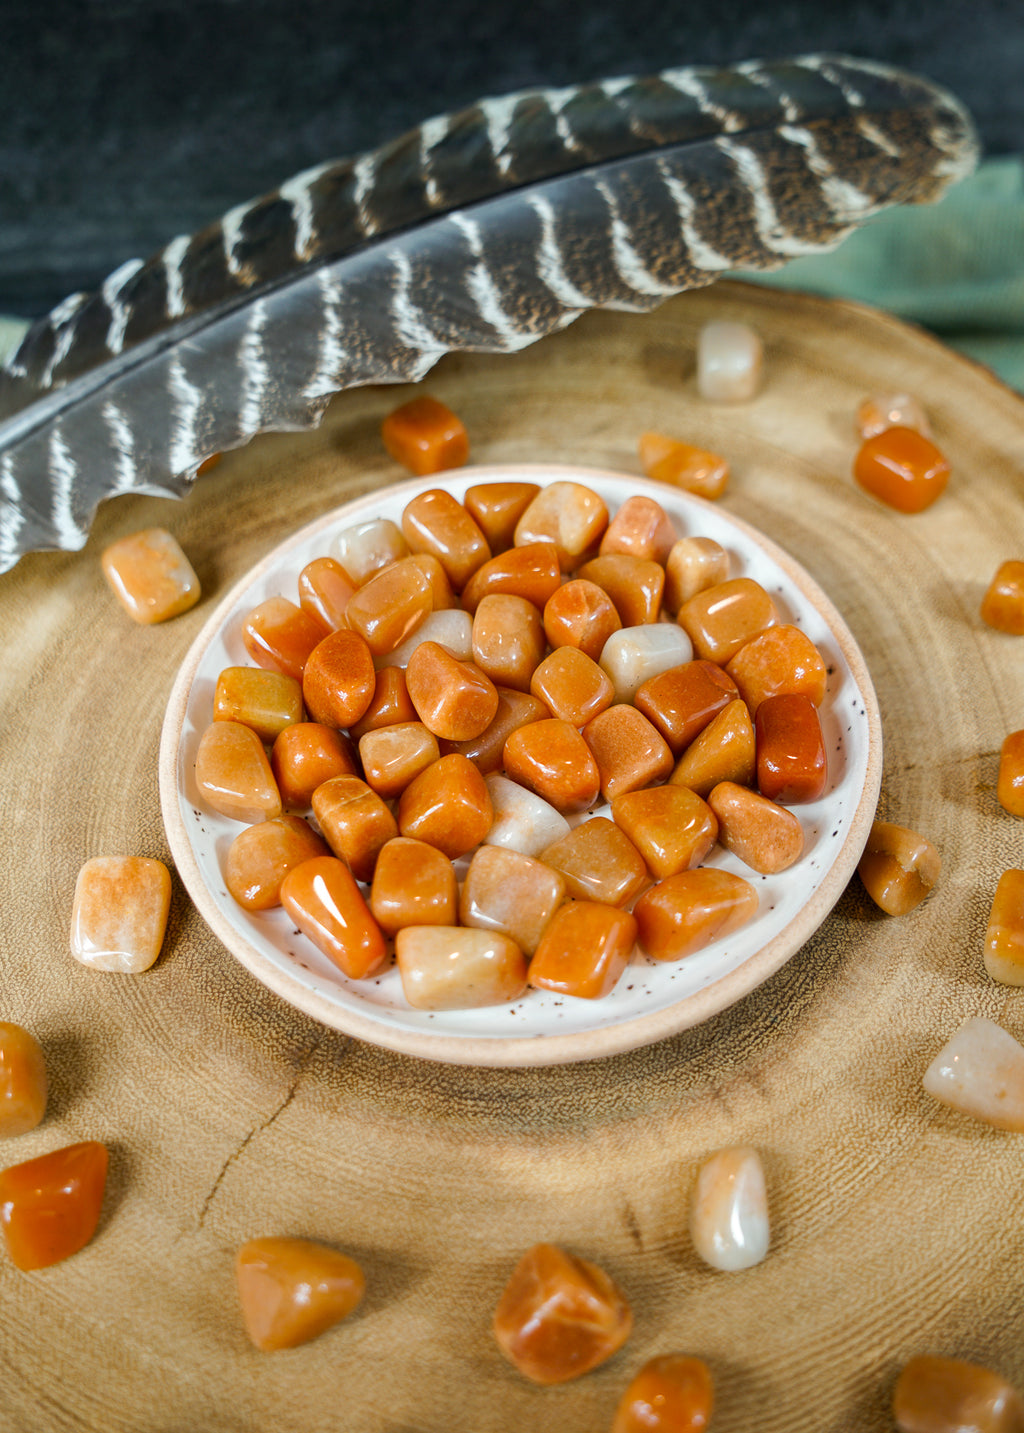 Tumbled Orange Aventurine for Inner Reflection